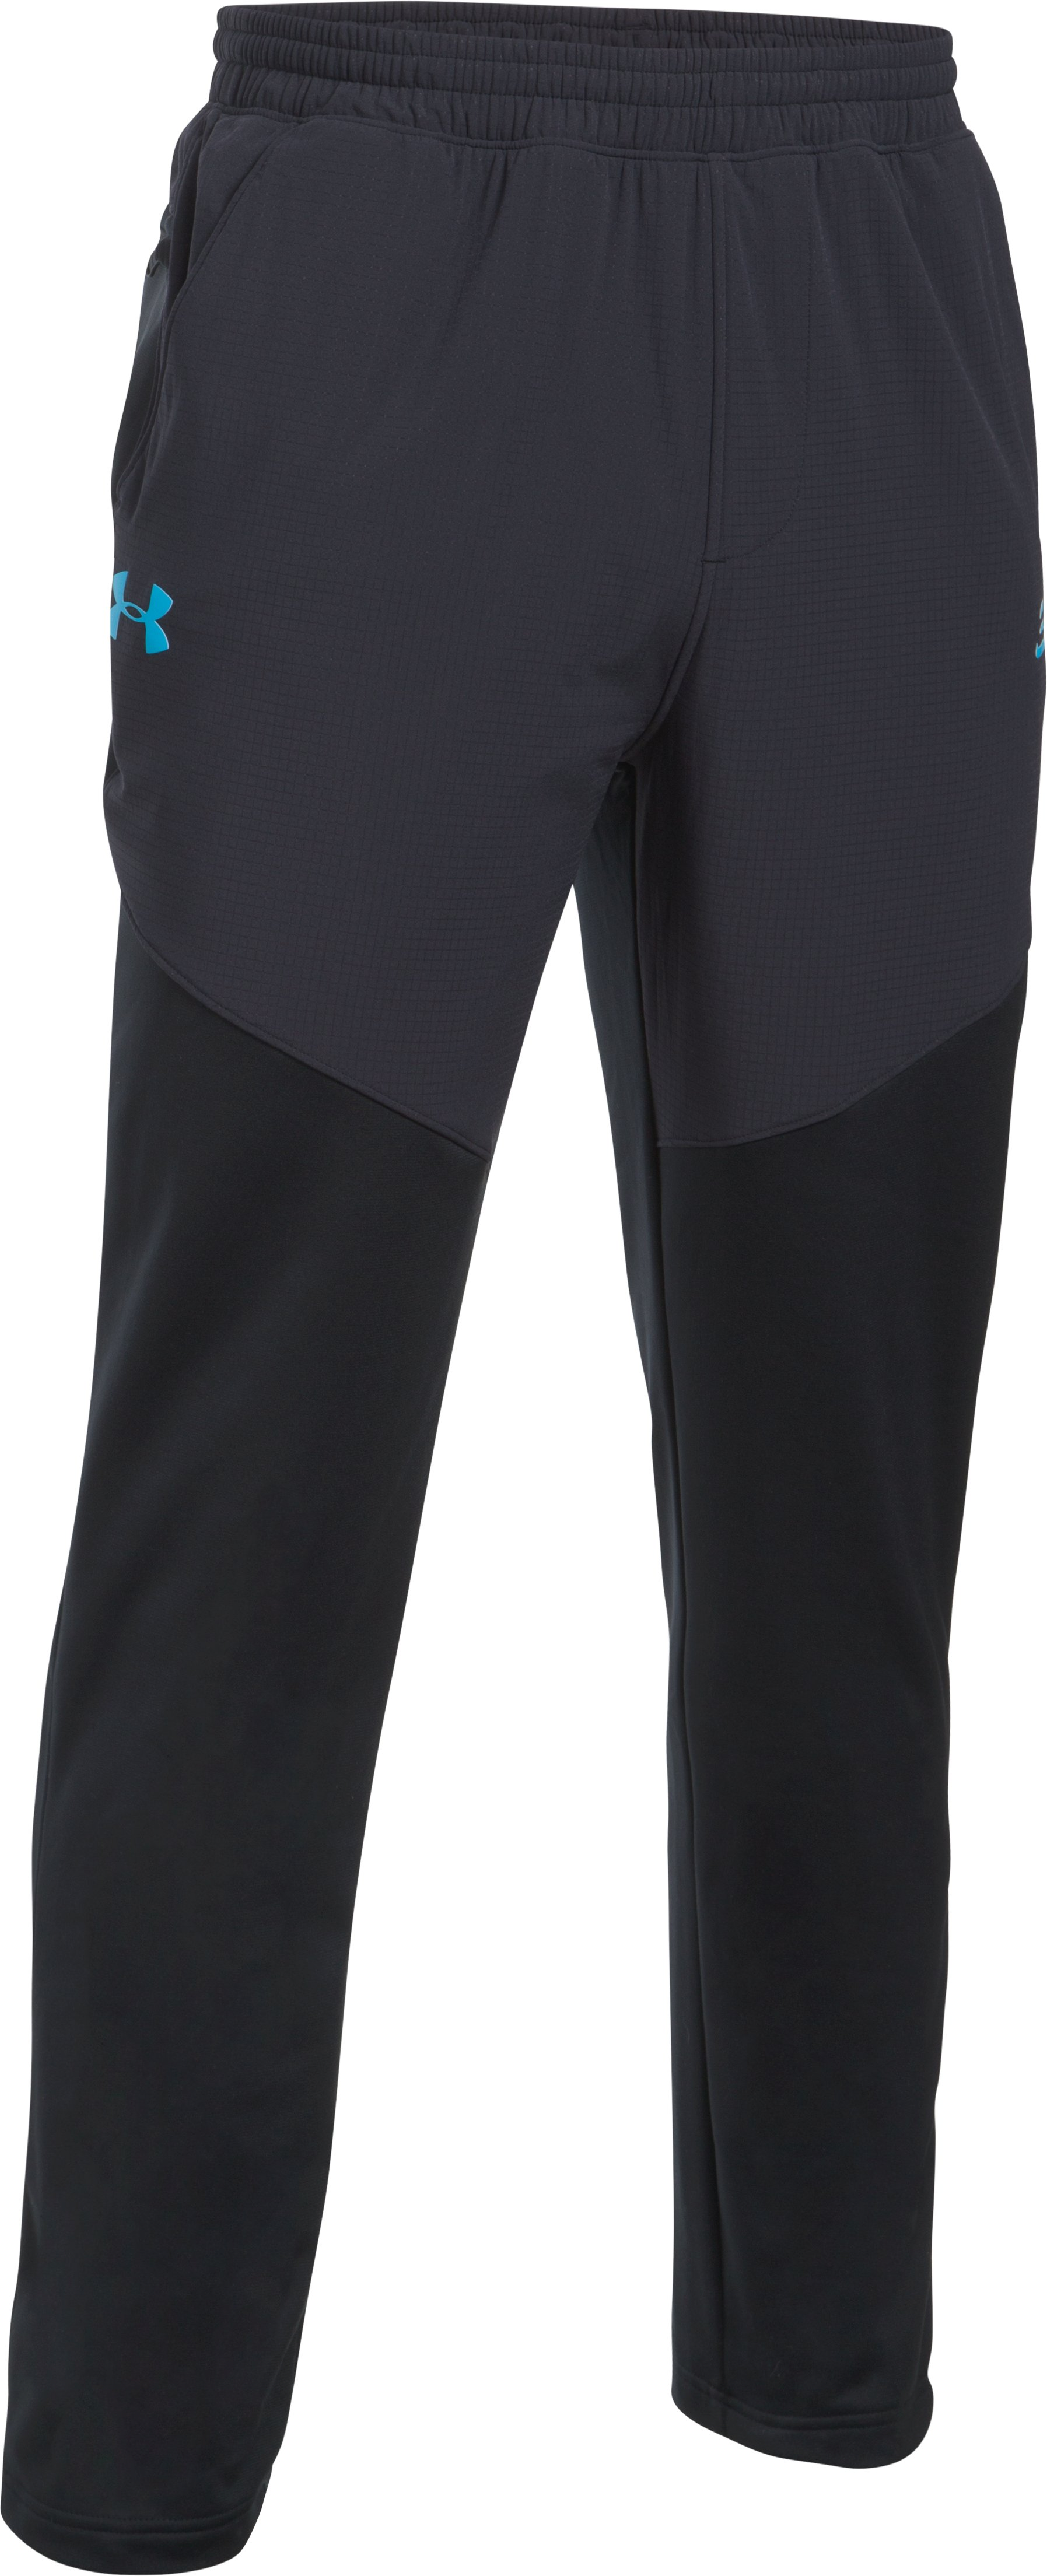 Men's SC30 Warm-Up Pants, Black ,